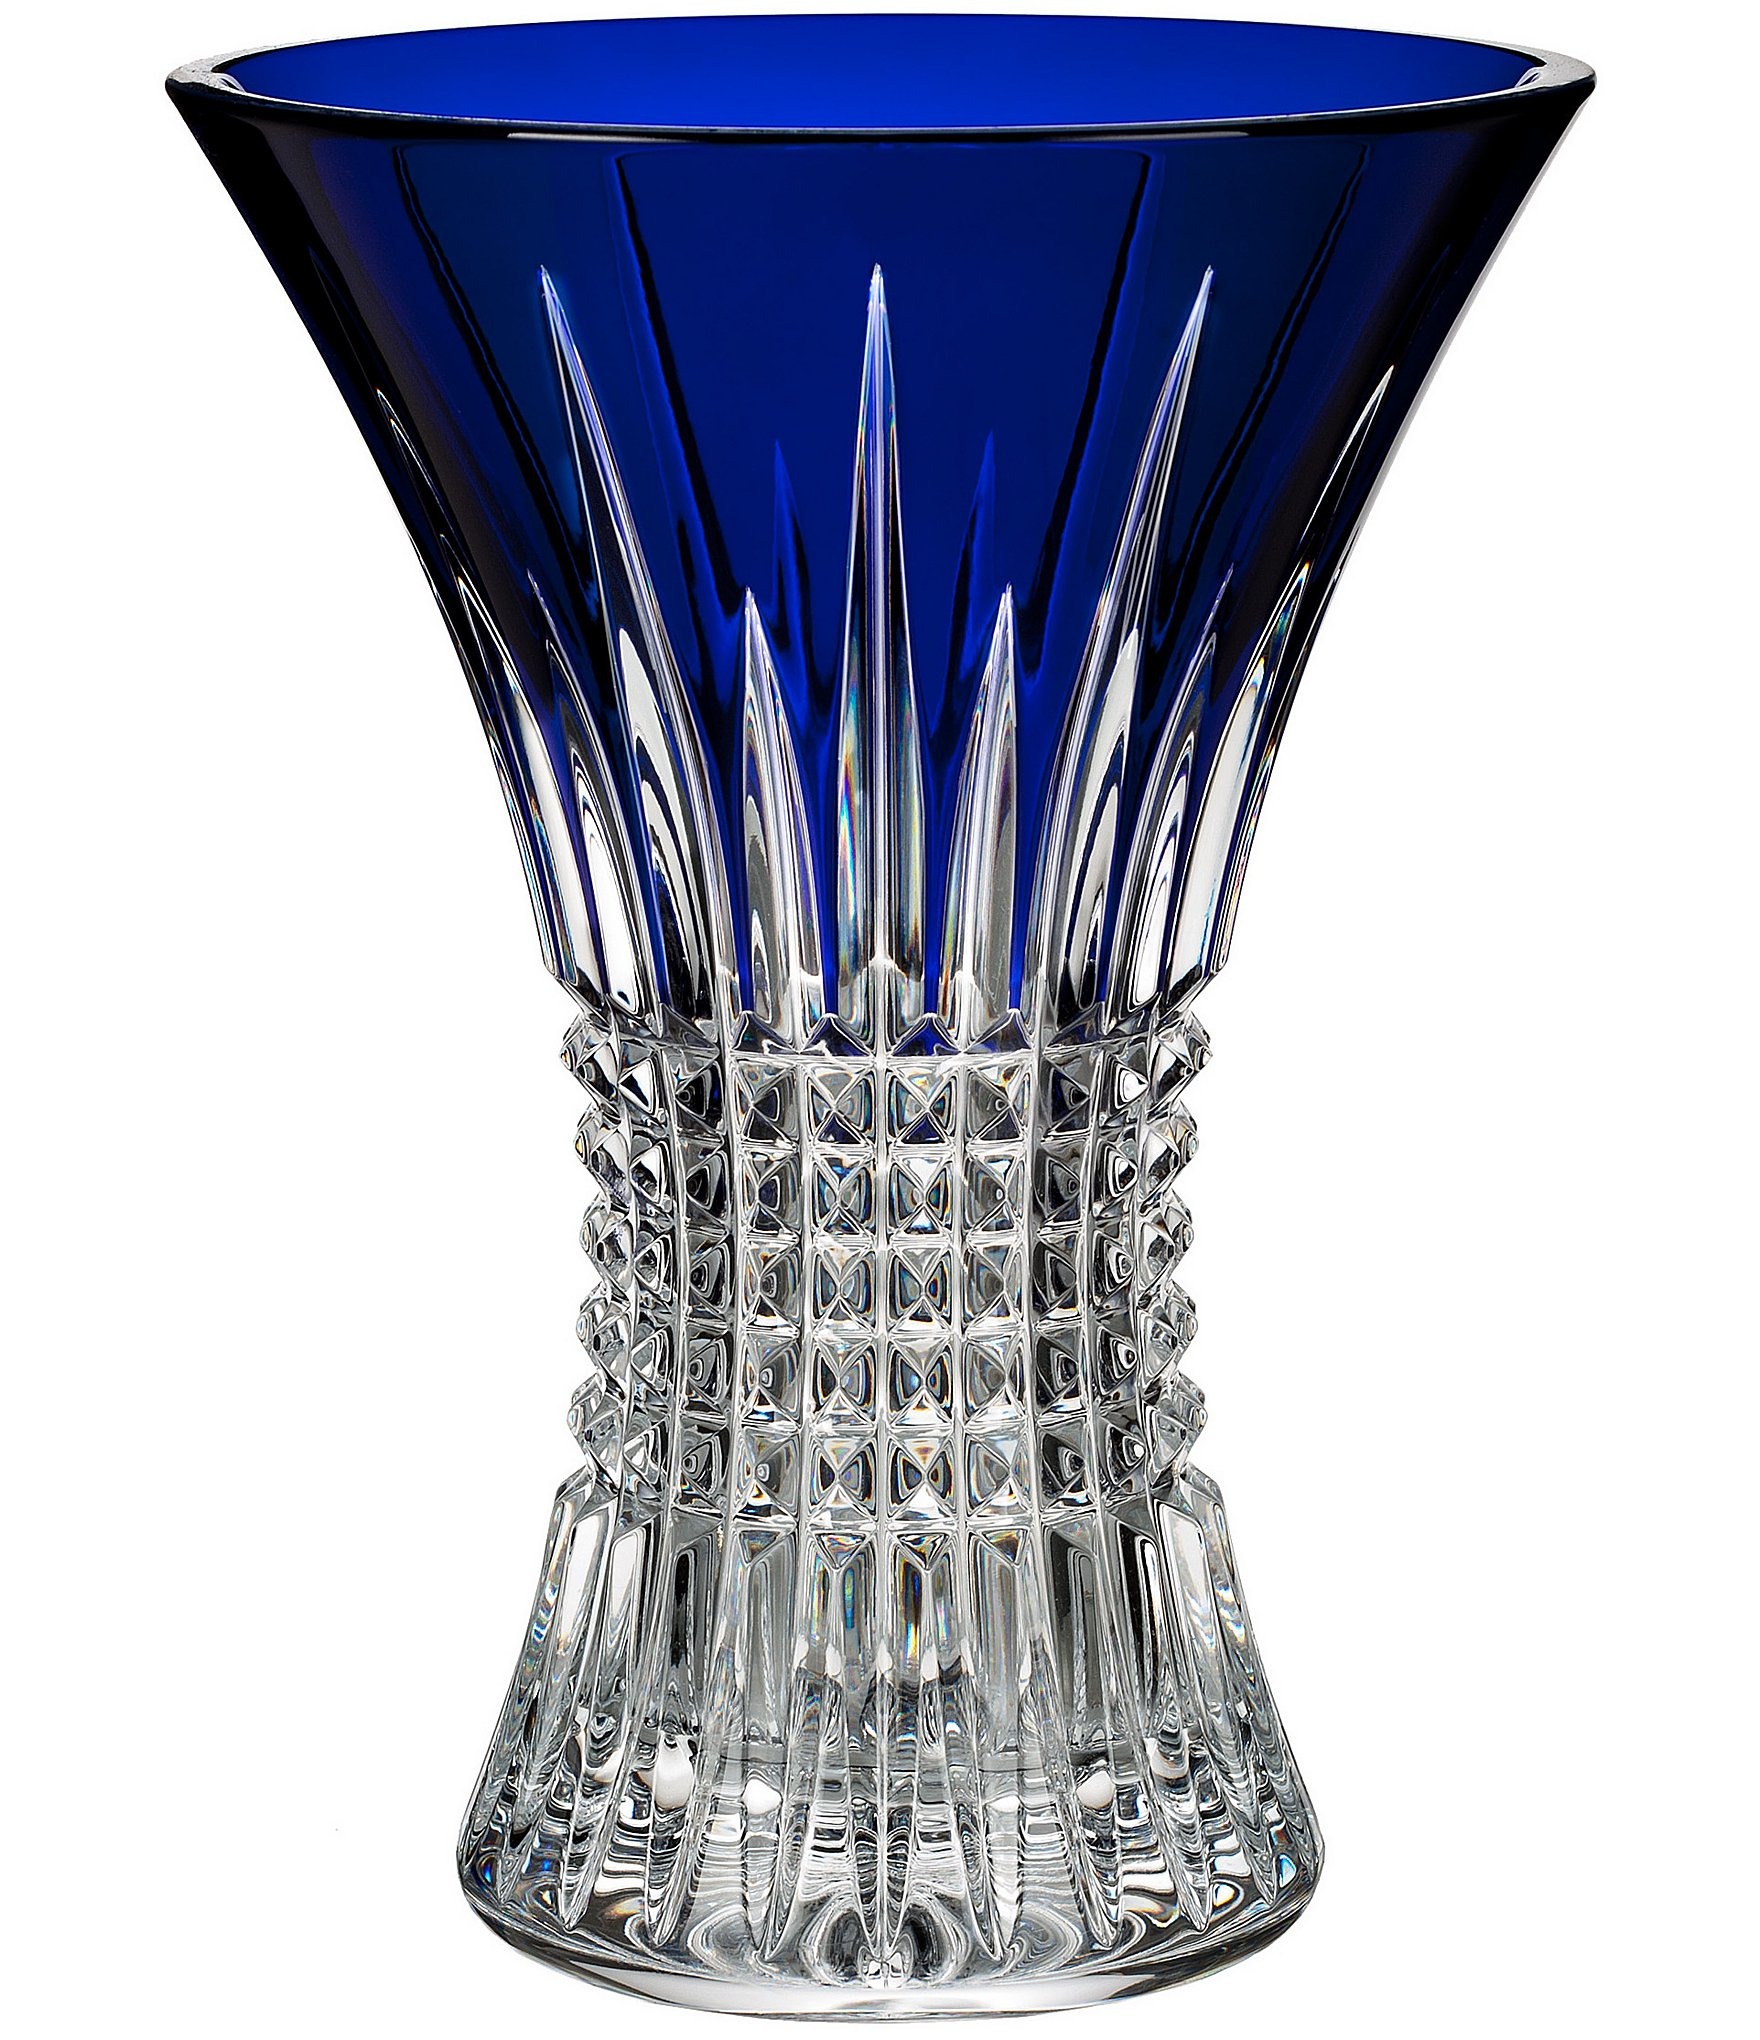 Waterford Lismore Diamond Crystal Vase Dillards